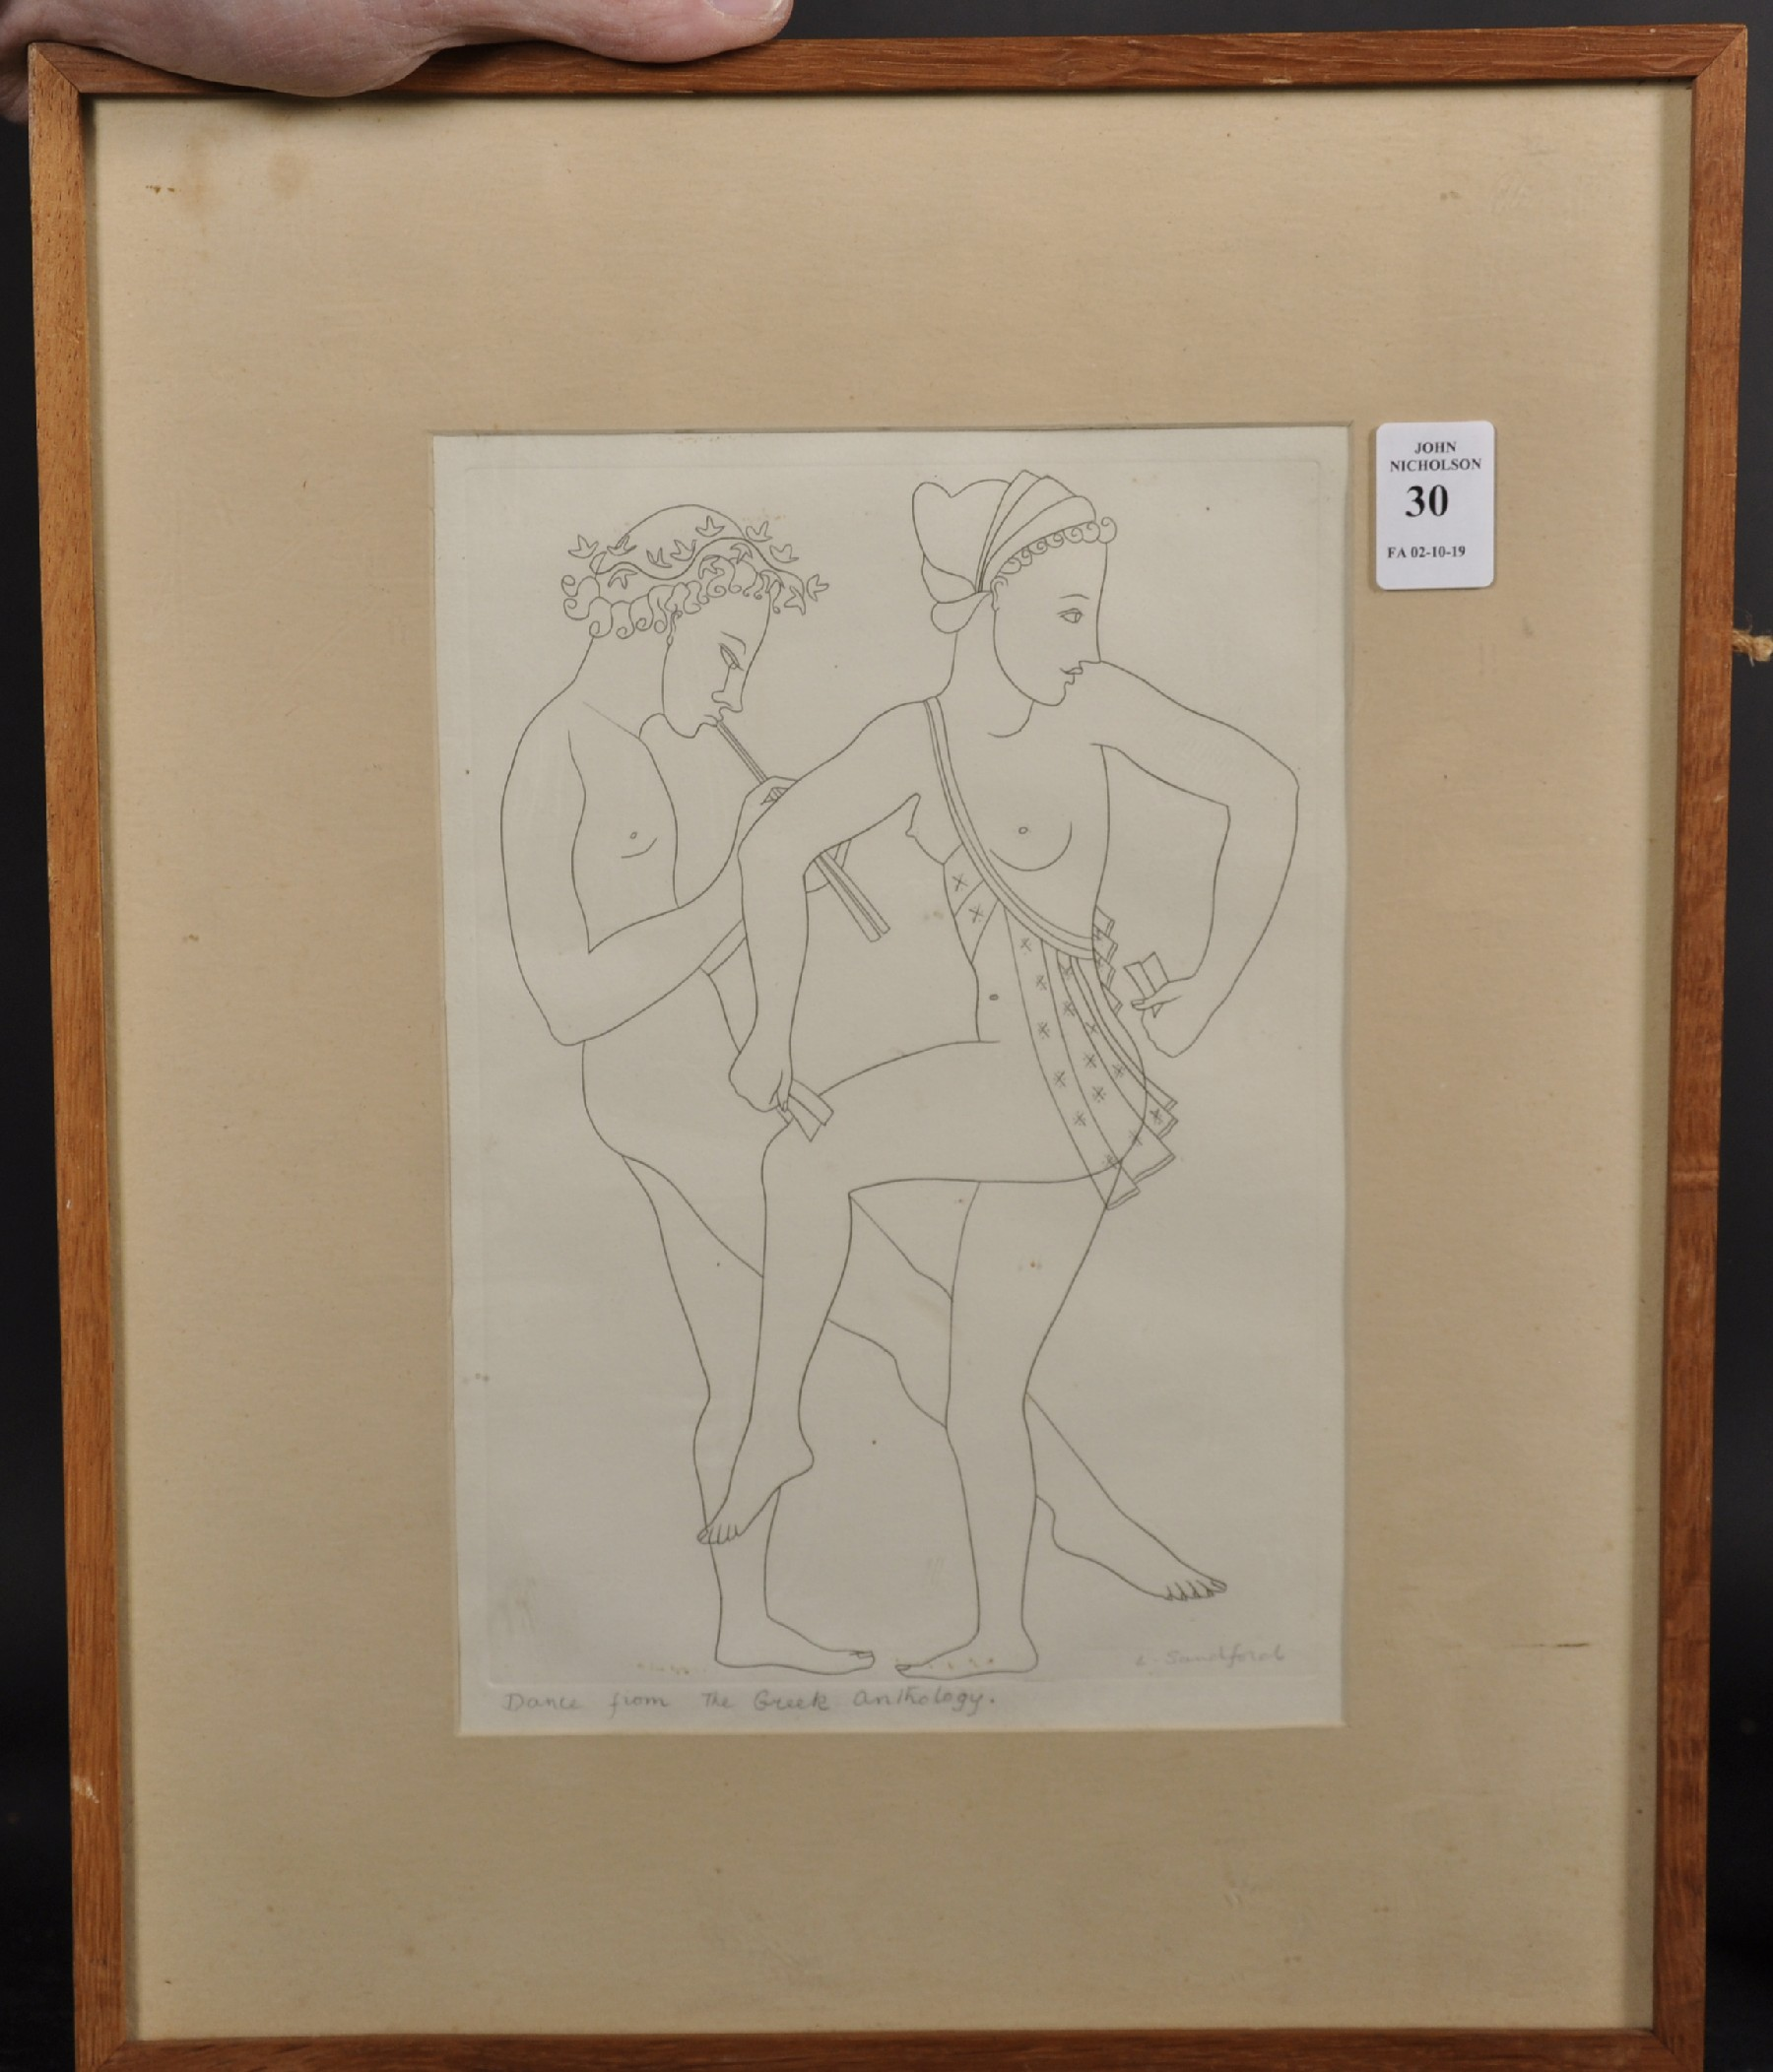 "Lettice Sandford (1902-1993) British. ""Dance From Greek Anthology"", Etching, Signed and Inscribed in - Image 2 of 4"